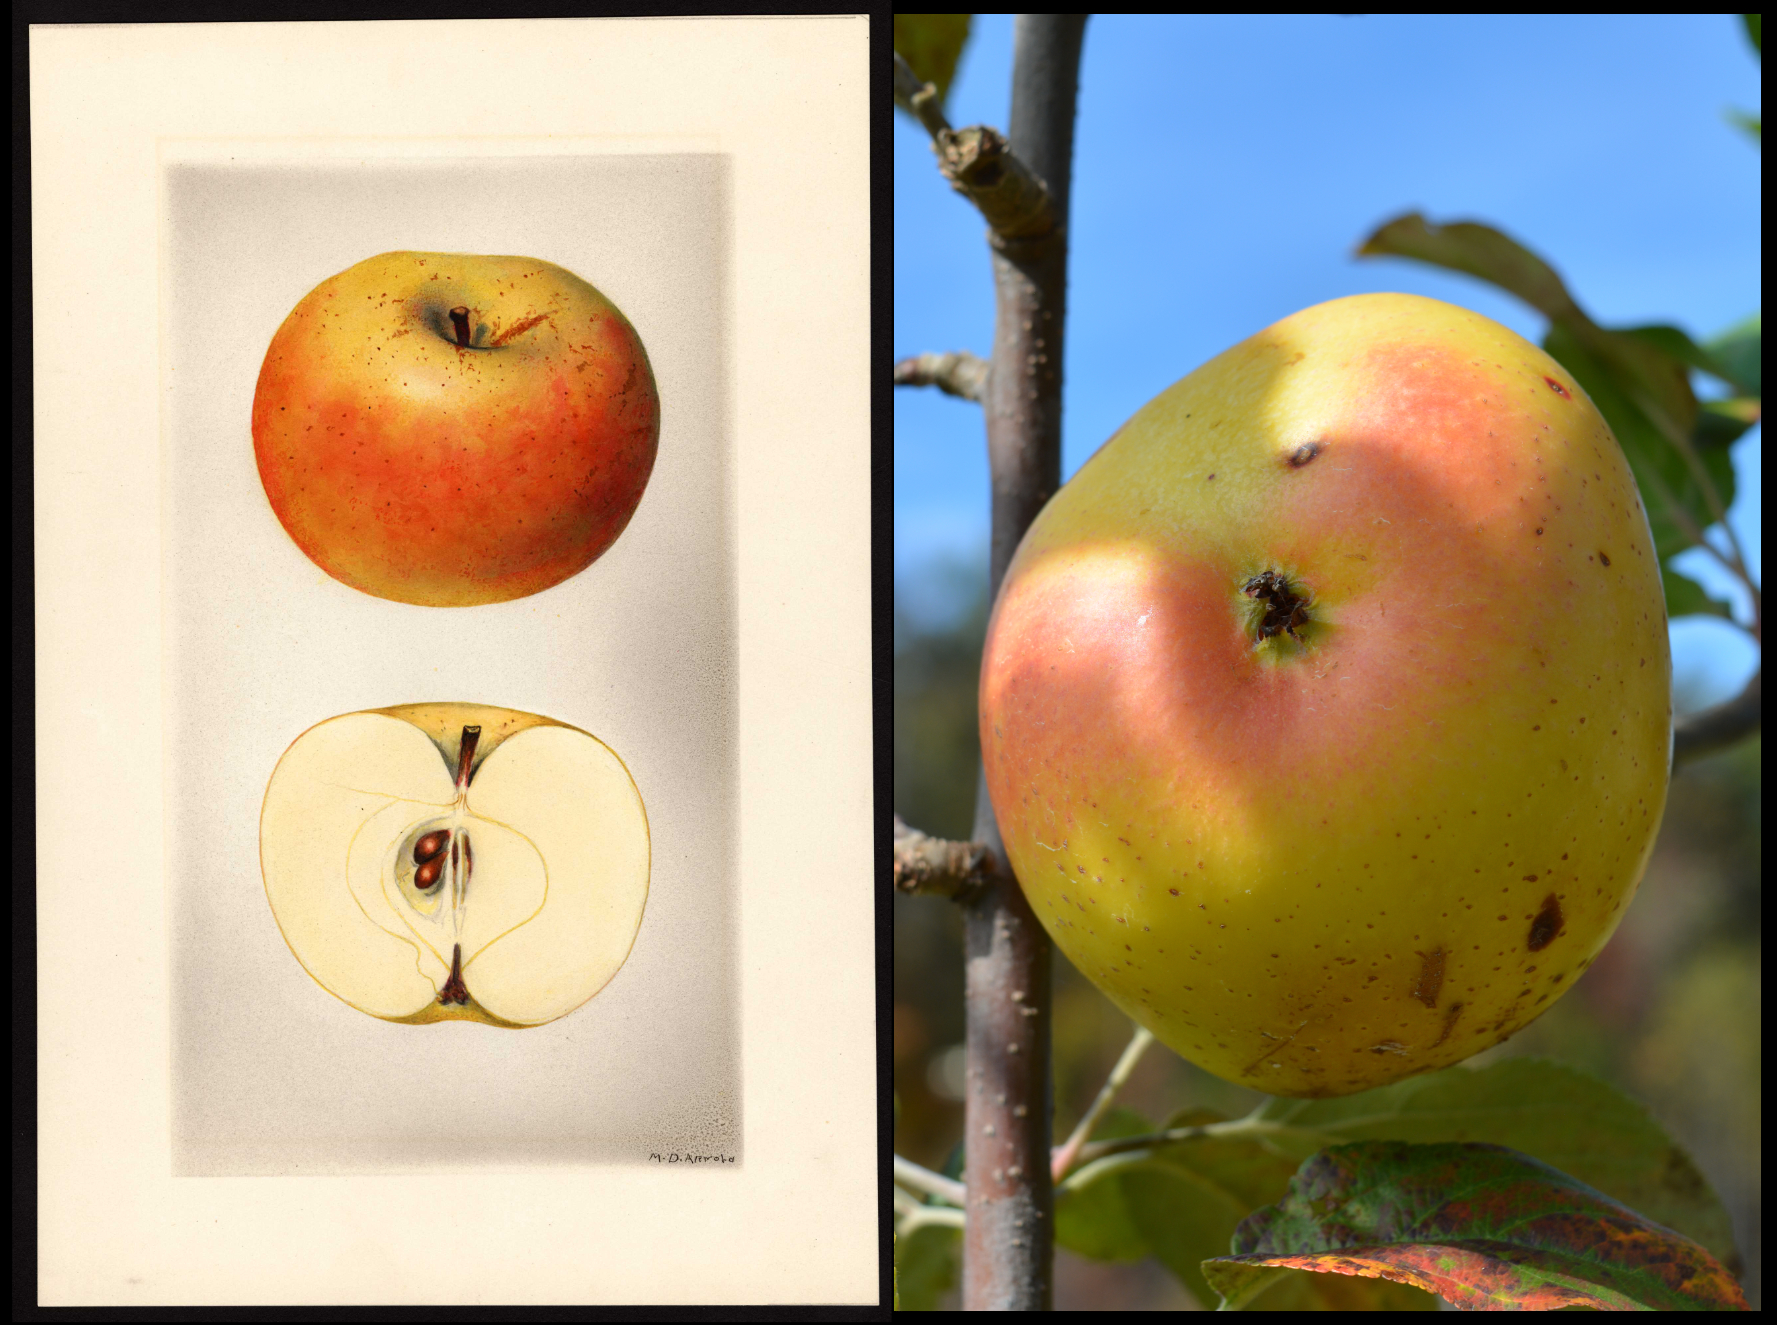 yellow apple with pink blush and small brown spots